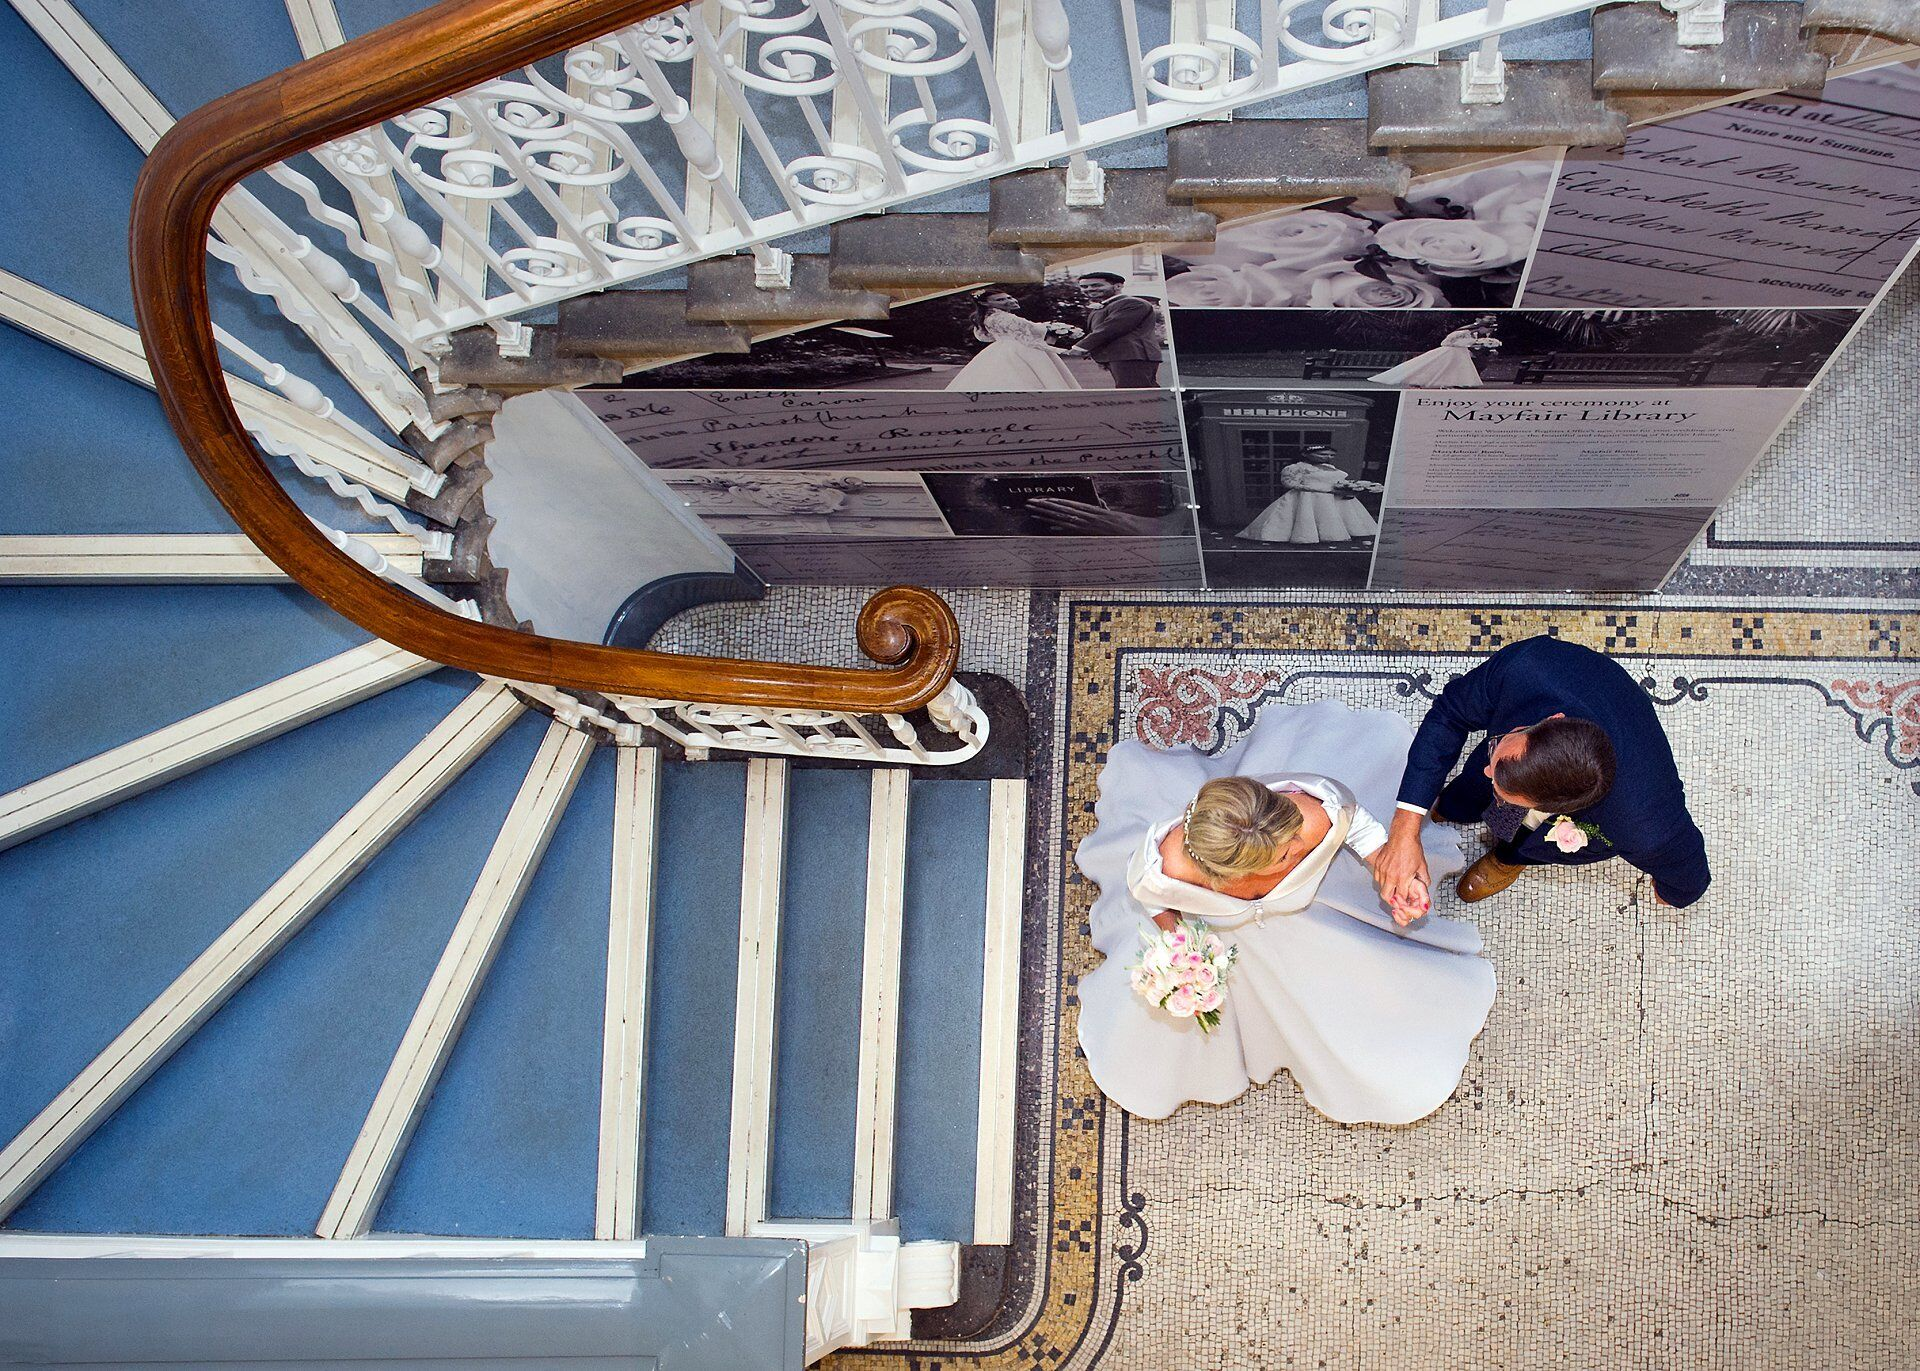 westminster register office wedding photographer emma duggan at mayfair library here a bride and groom twirl at the bottom of the staircase